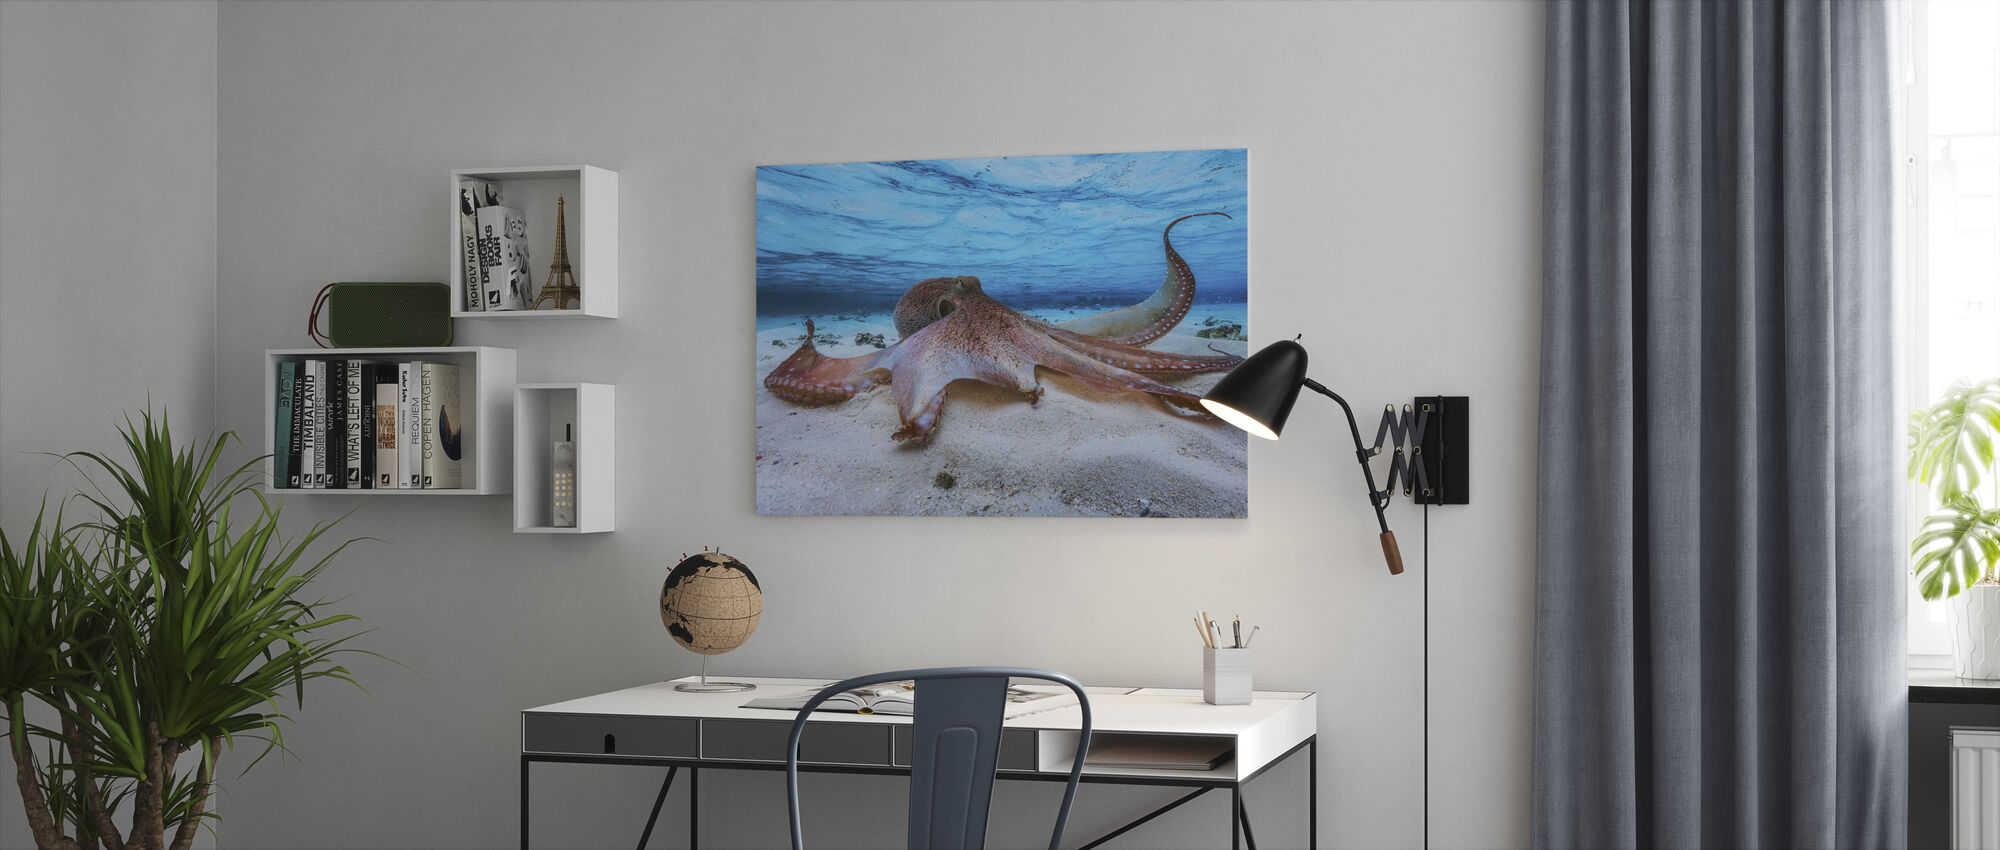 Octopus - Canvas print - Office